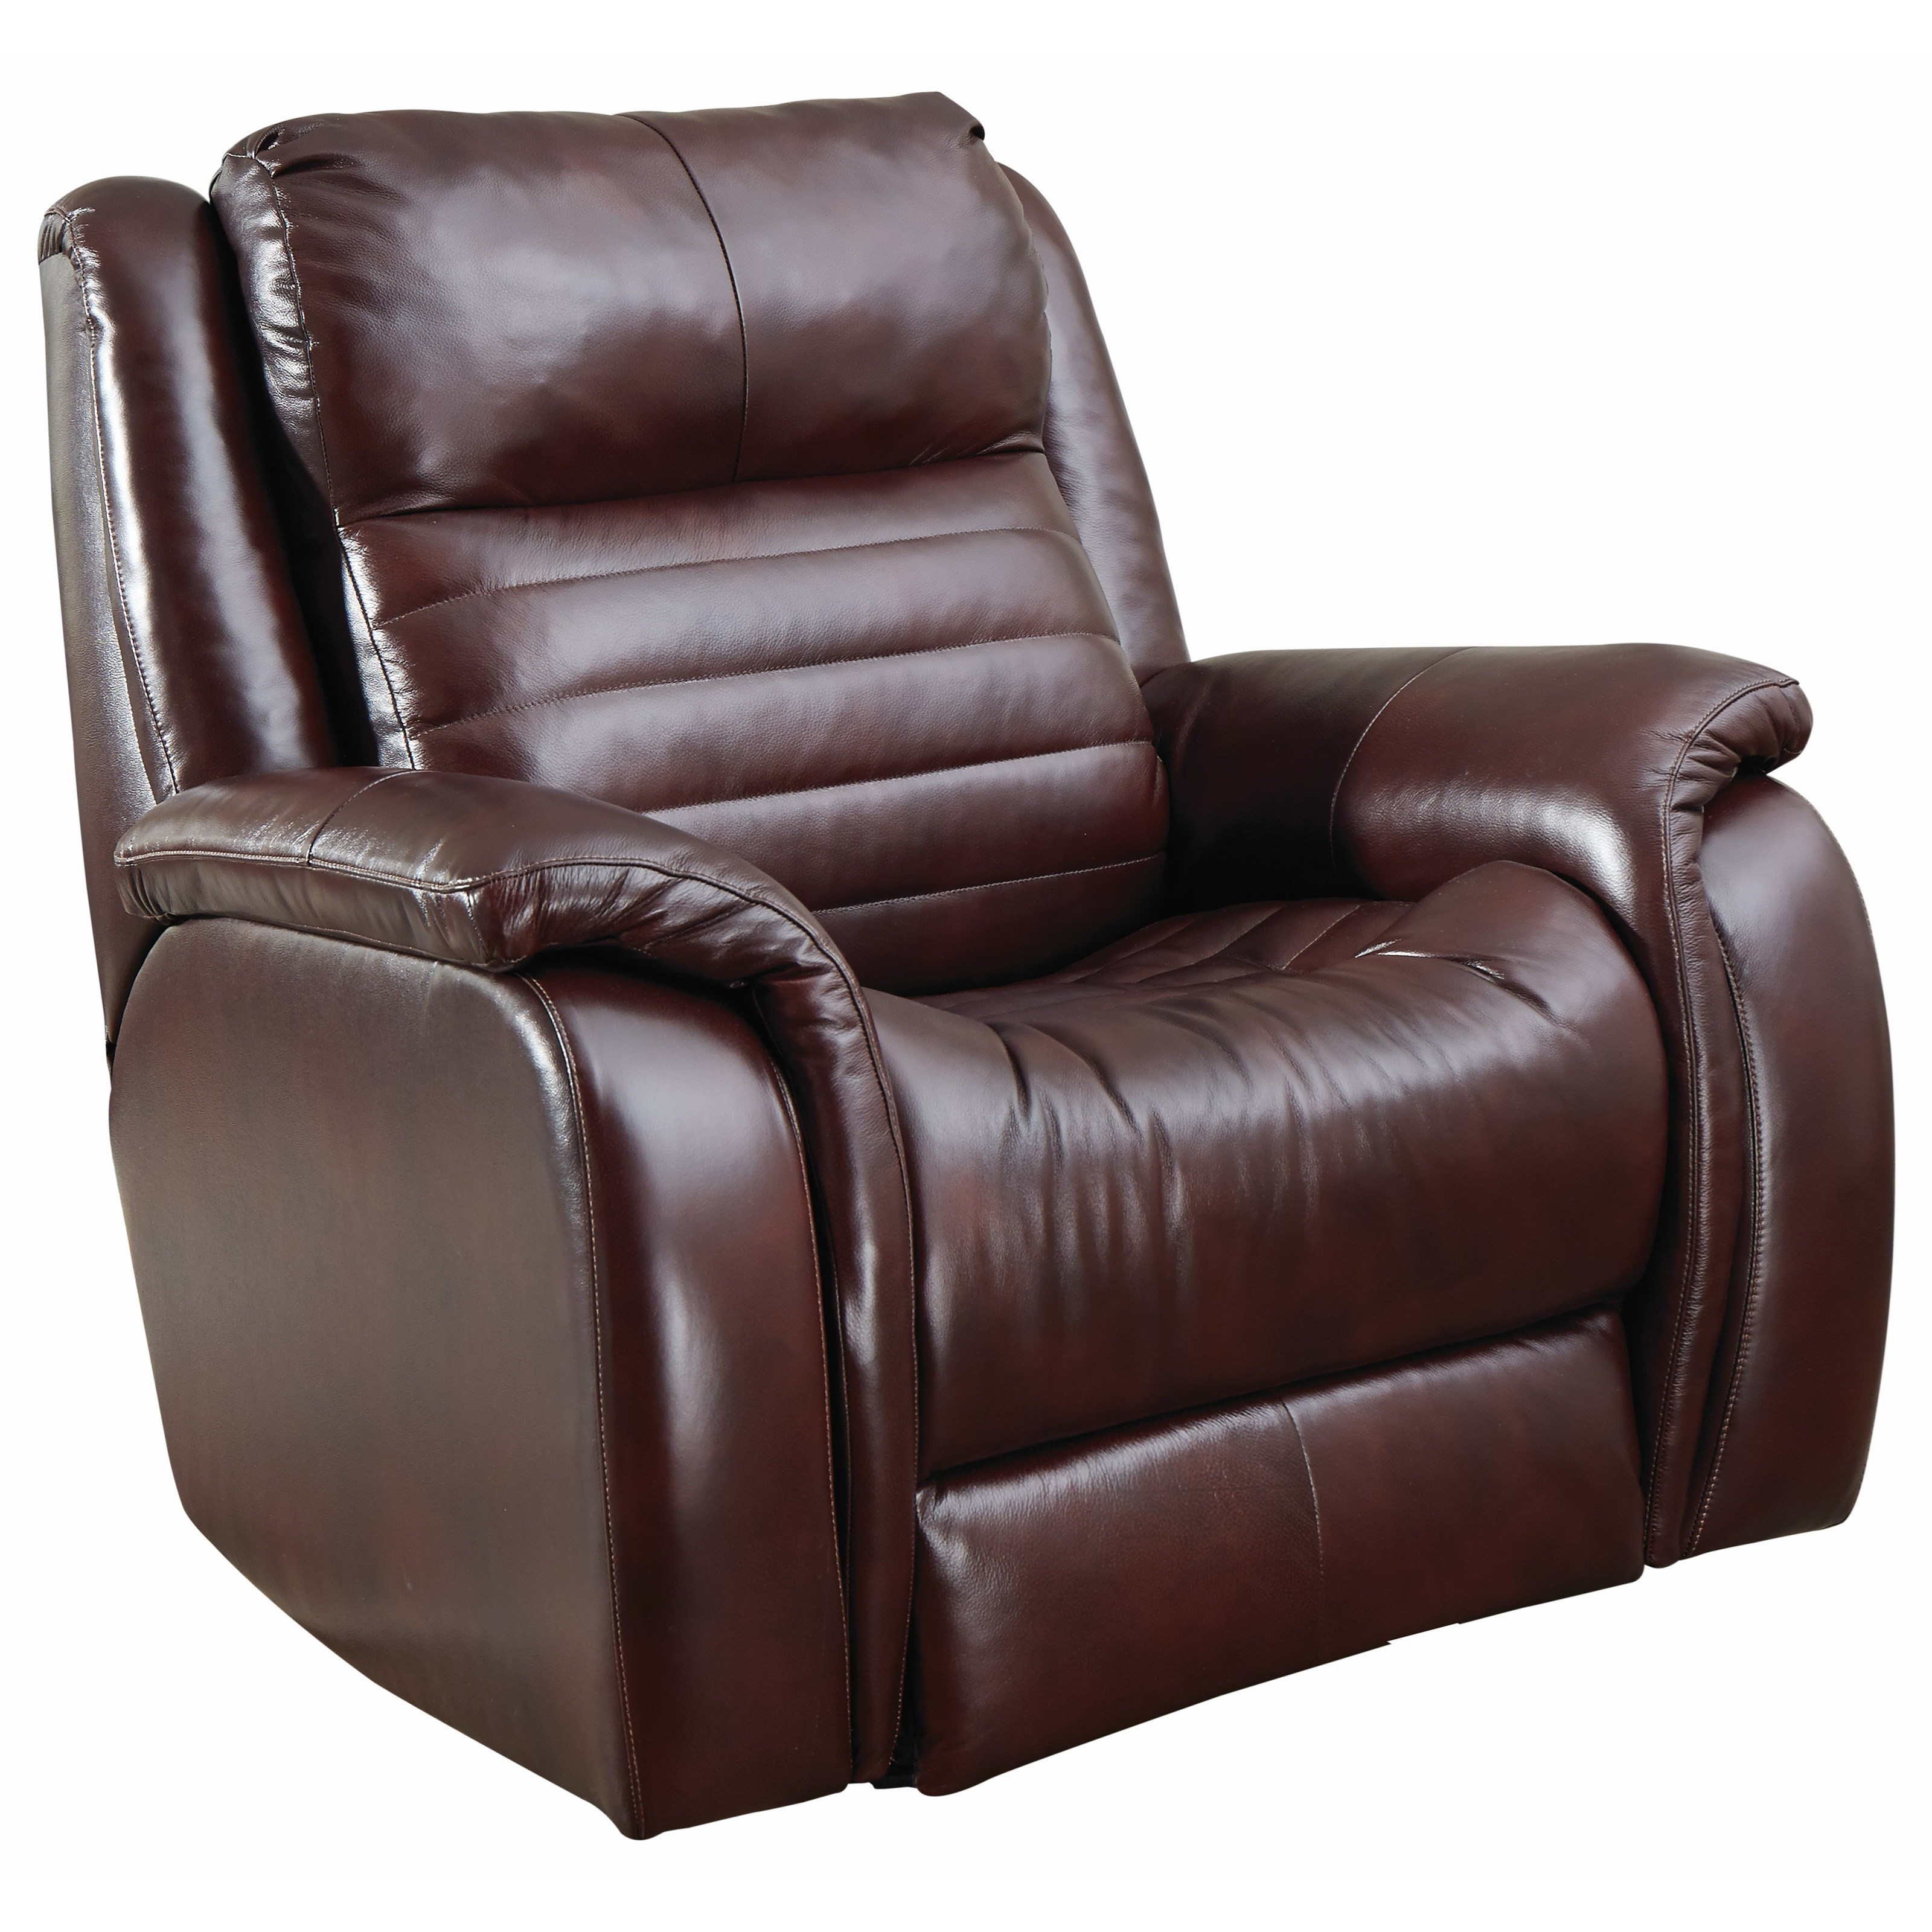 Essex Power Headrest Wallhugger Recliner by Southern Motion at Home Furnishings Direct